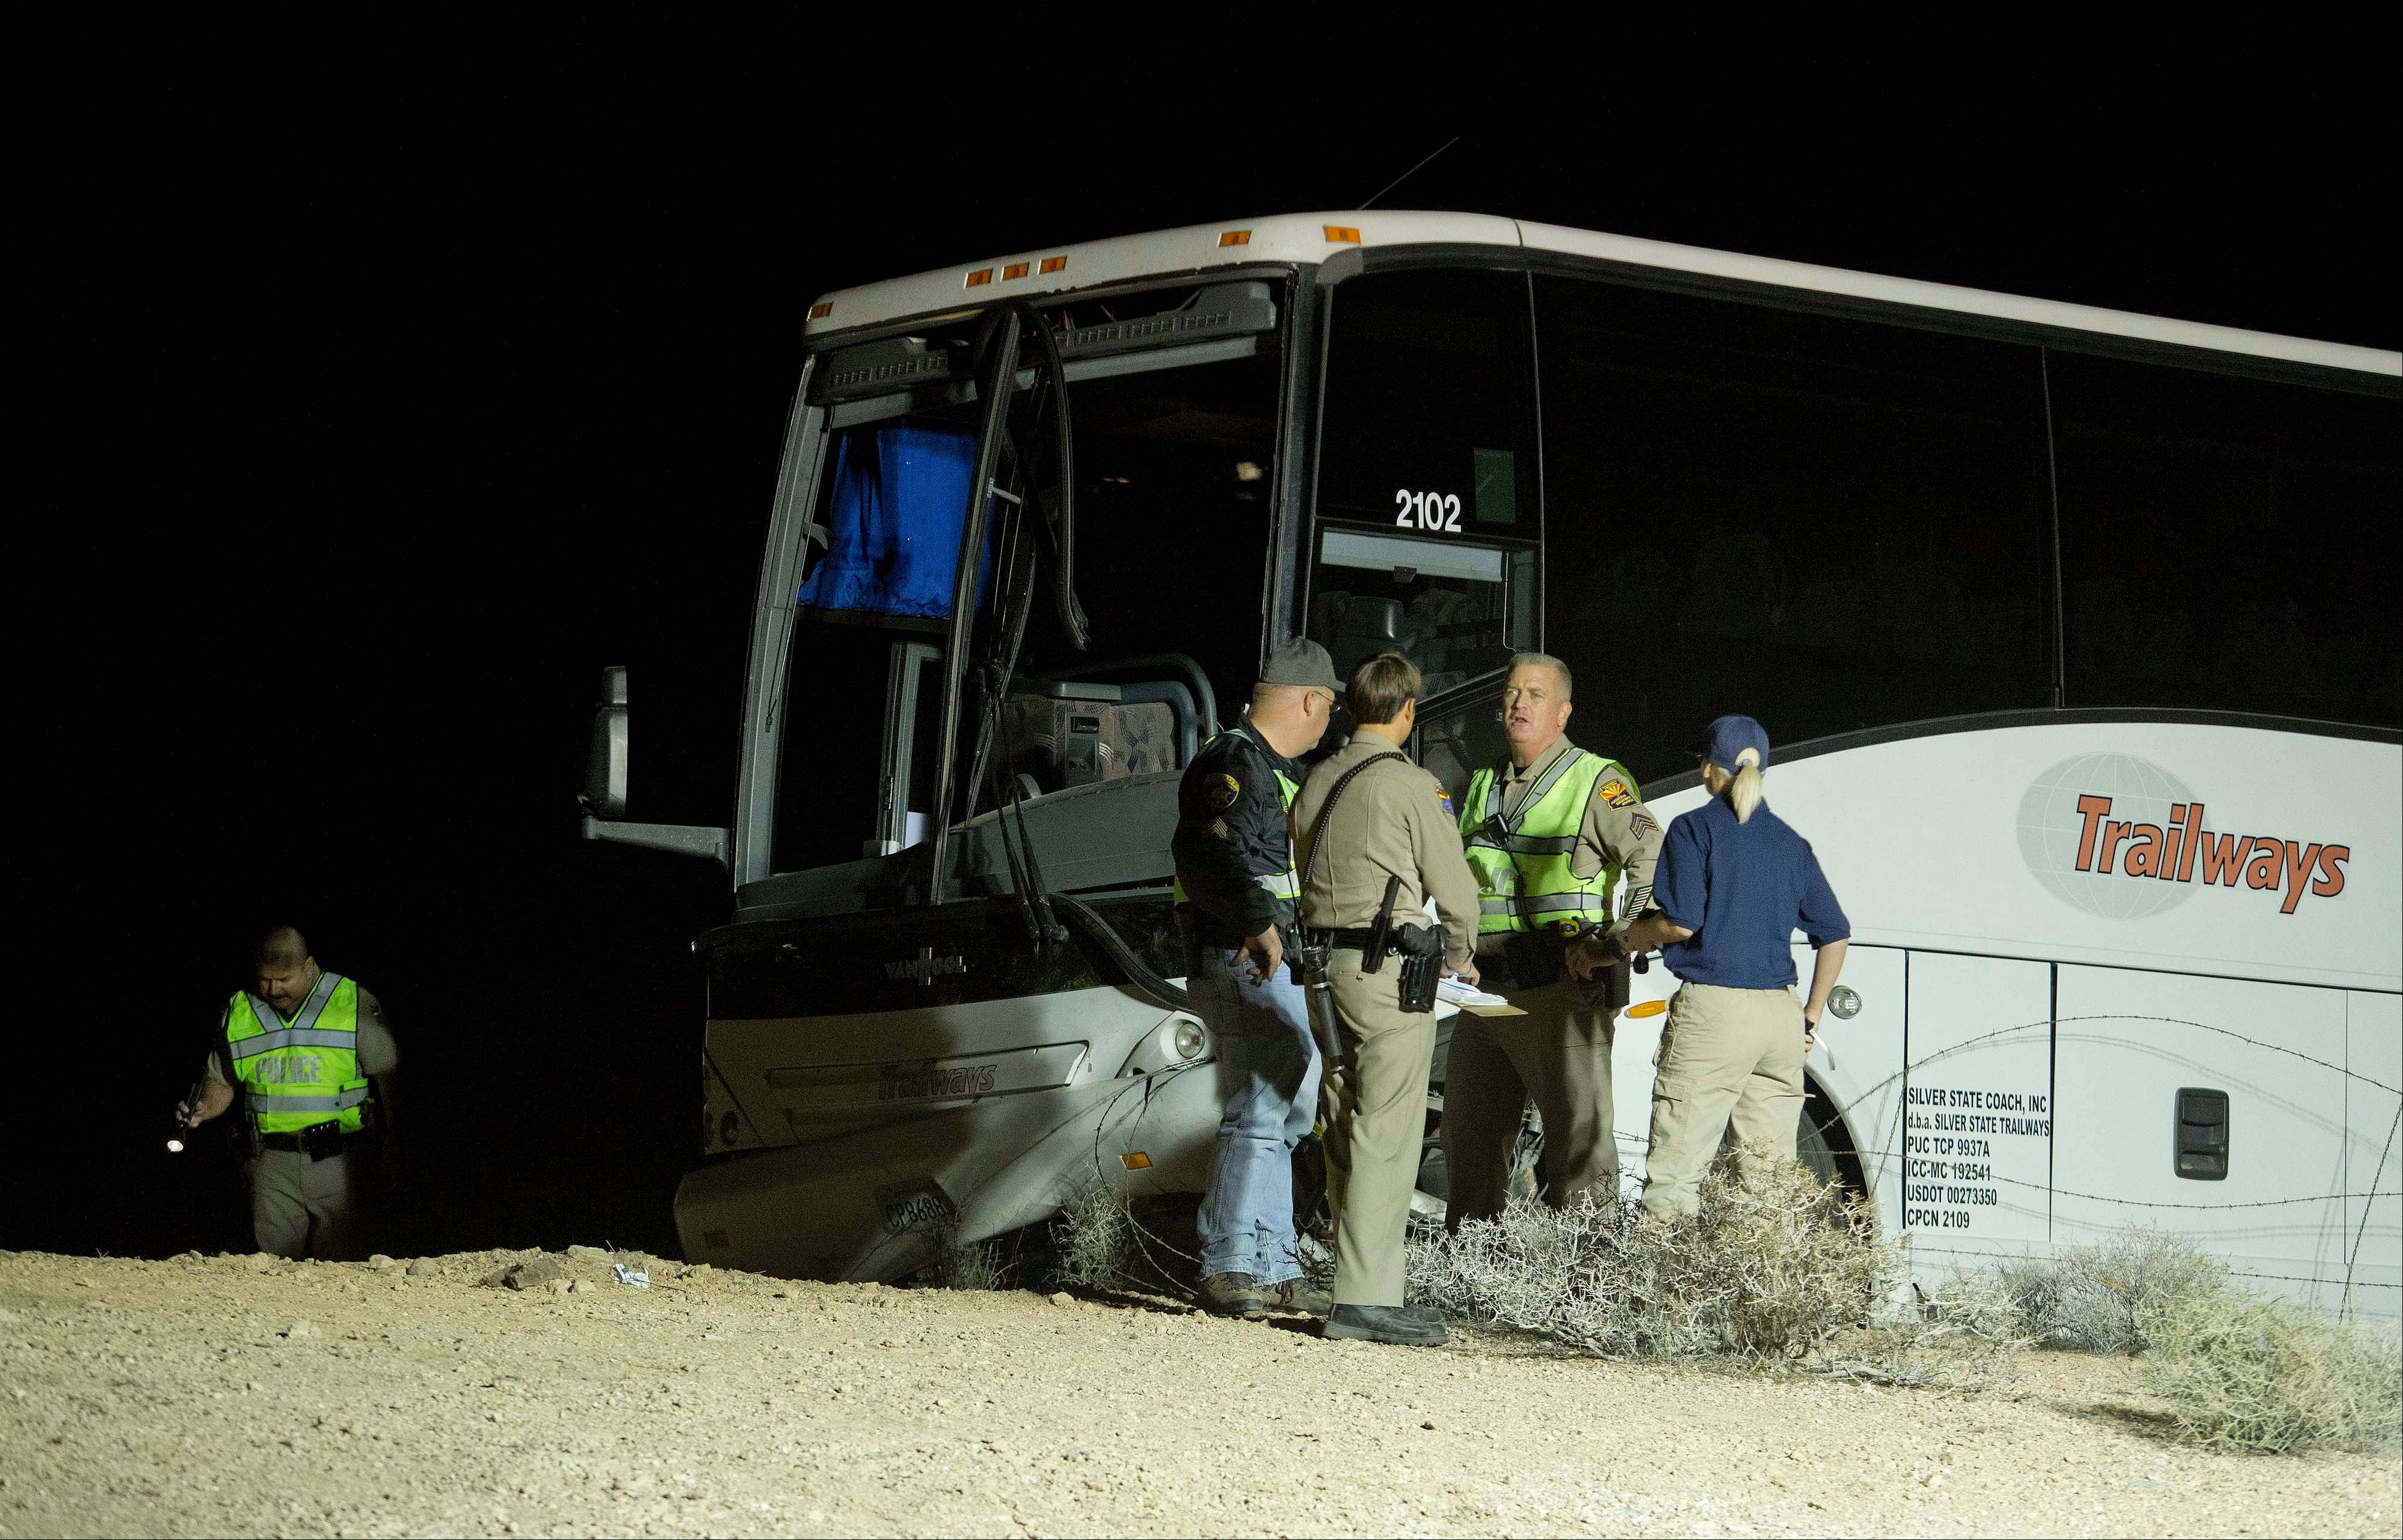 Arizona Highway Patrol officers examine the exterior of a tour bus that careened off the highway and crashed off northbound Highway 93, Friday, Oct. 19, near Willow Beach, Ariz. The crash killed the driver and left at least four passengers with serious injuries.